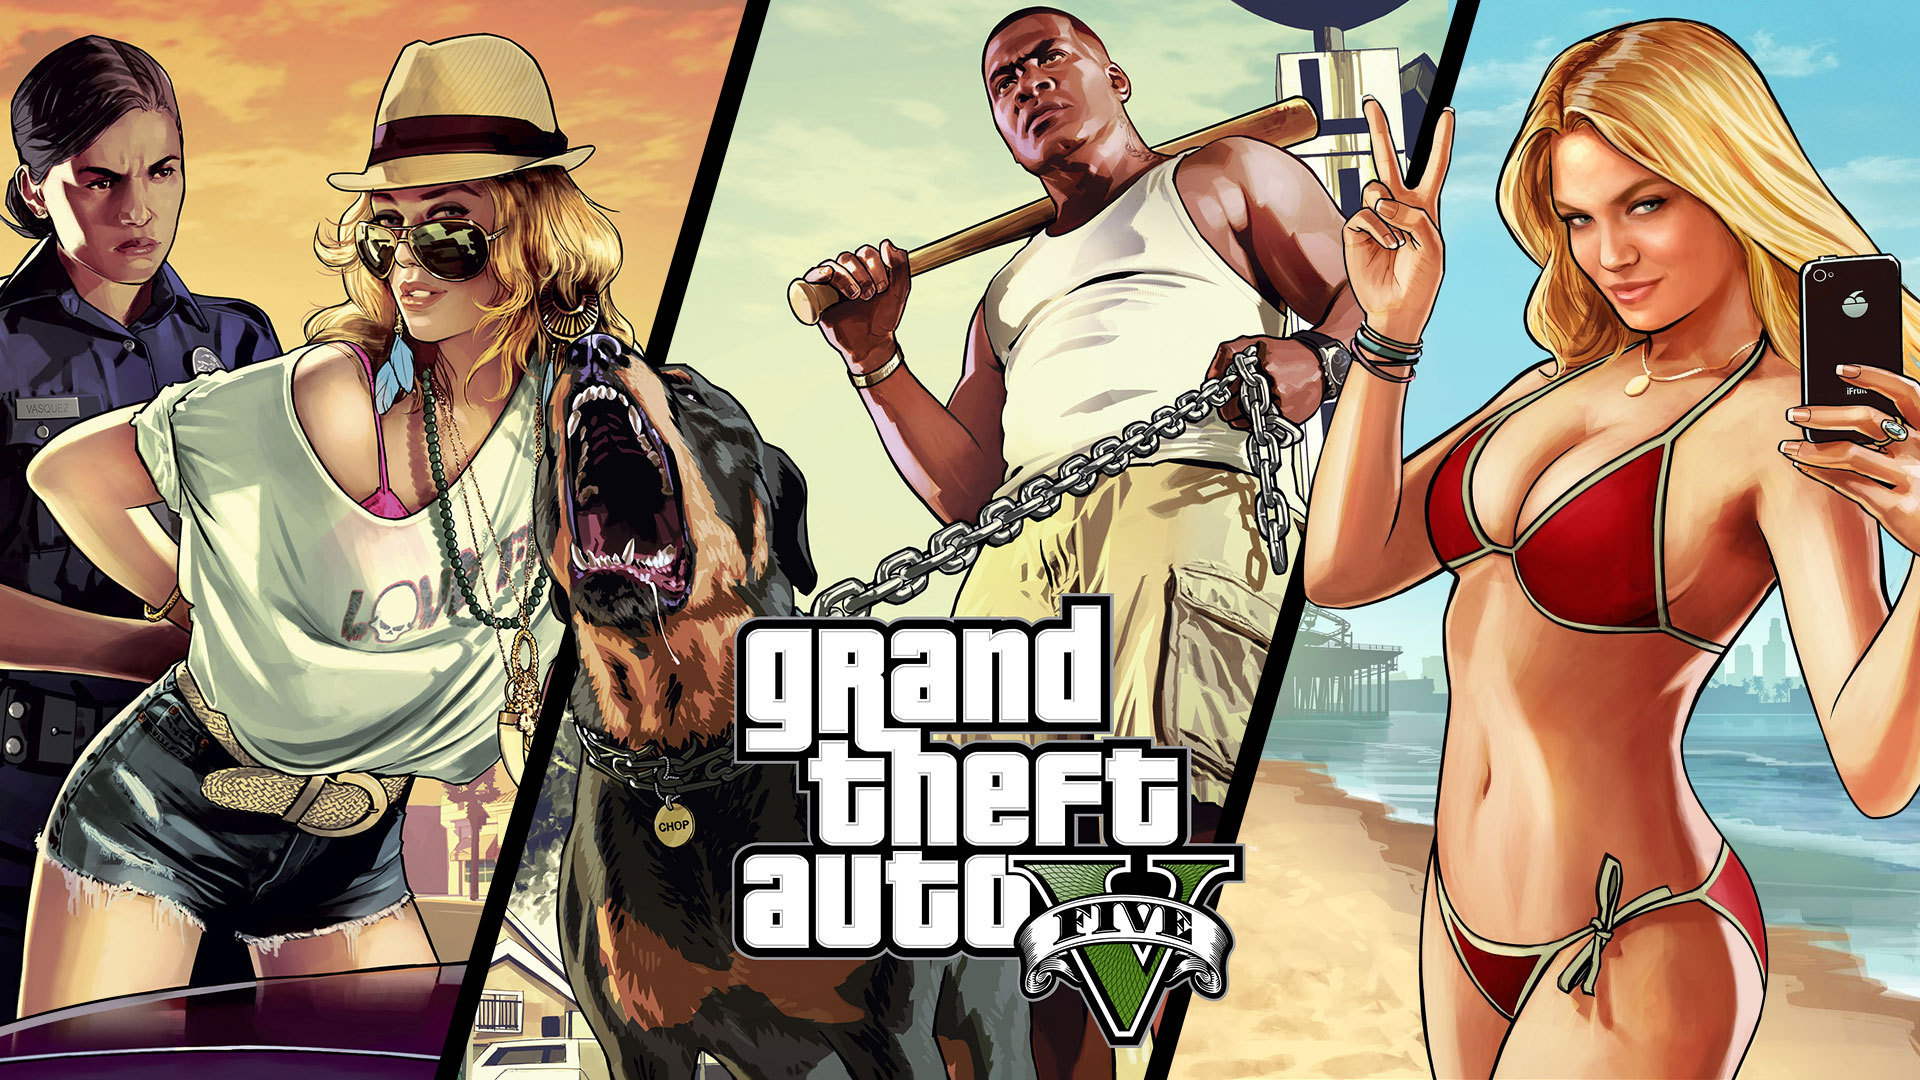 Gta5-wallpaper-grand-theft-auto5-gta